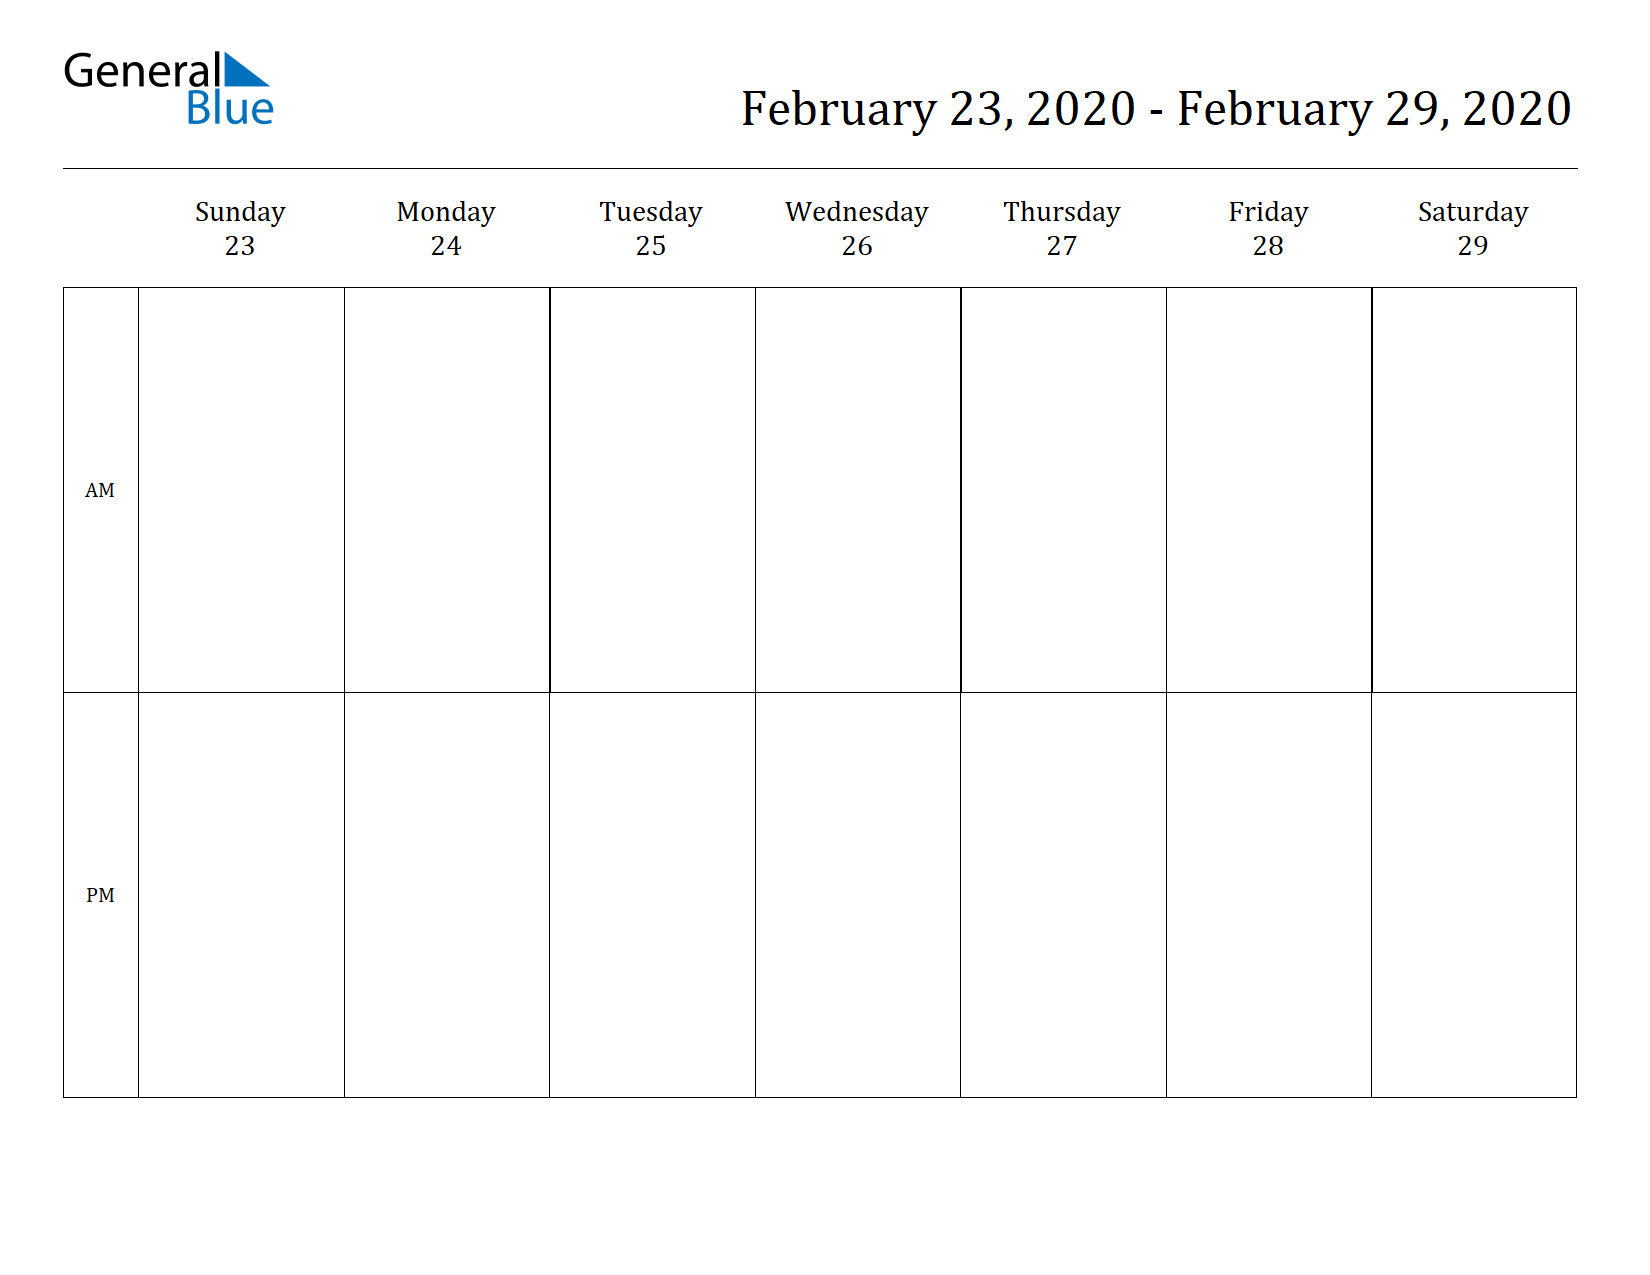 Weekly Calendar for Feb 23, 2020 to Feb 29, 2020